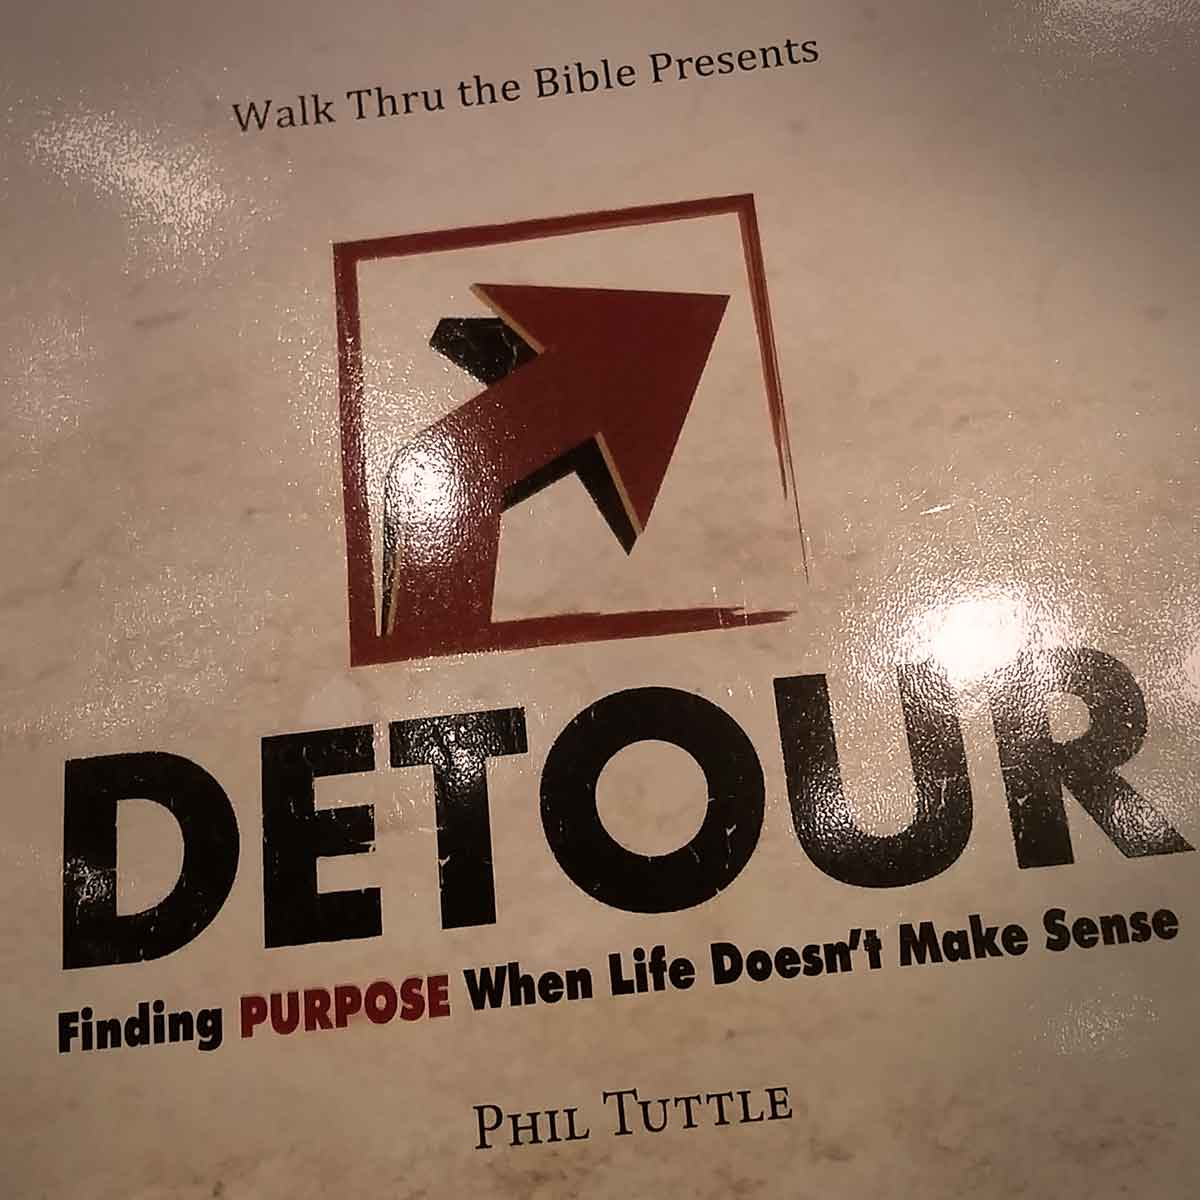 The Detours in our lives